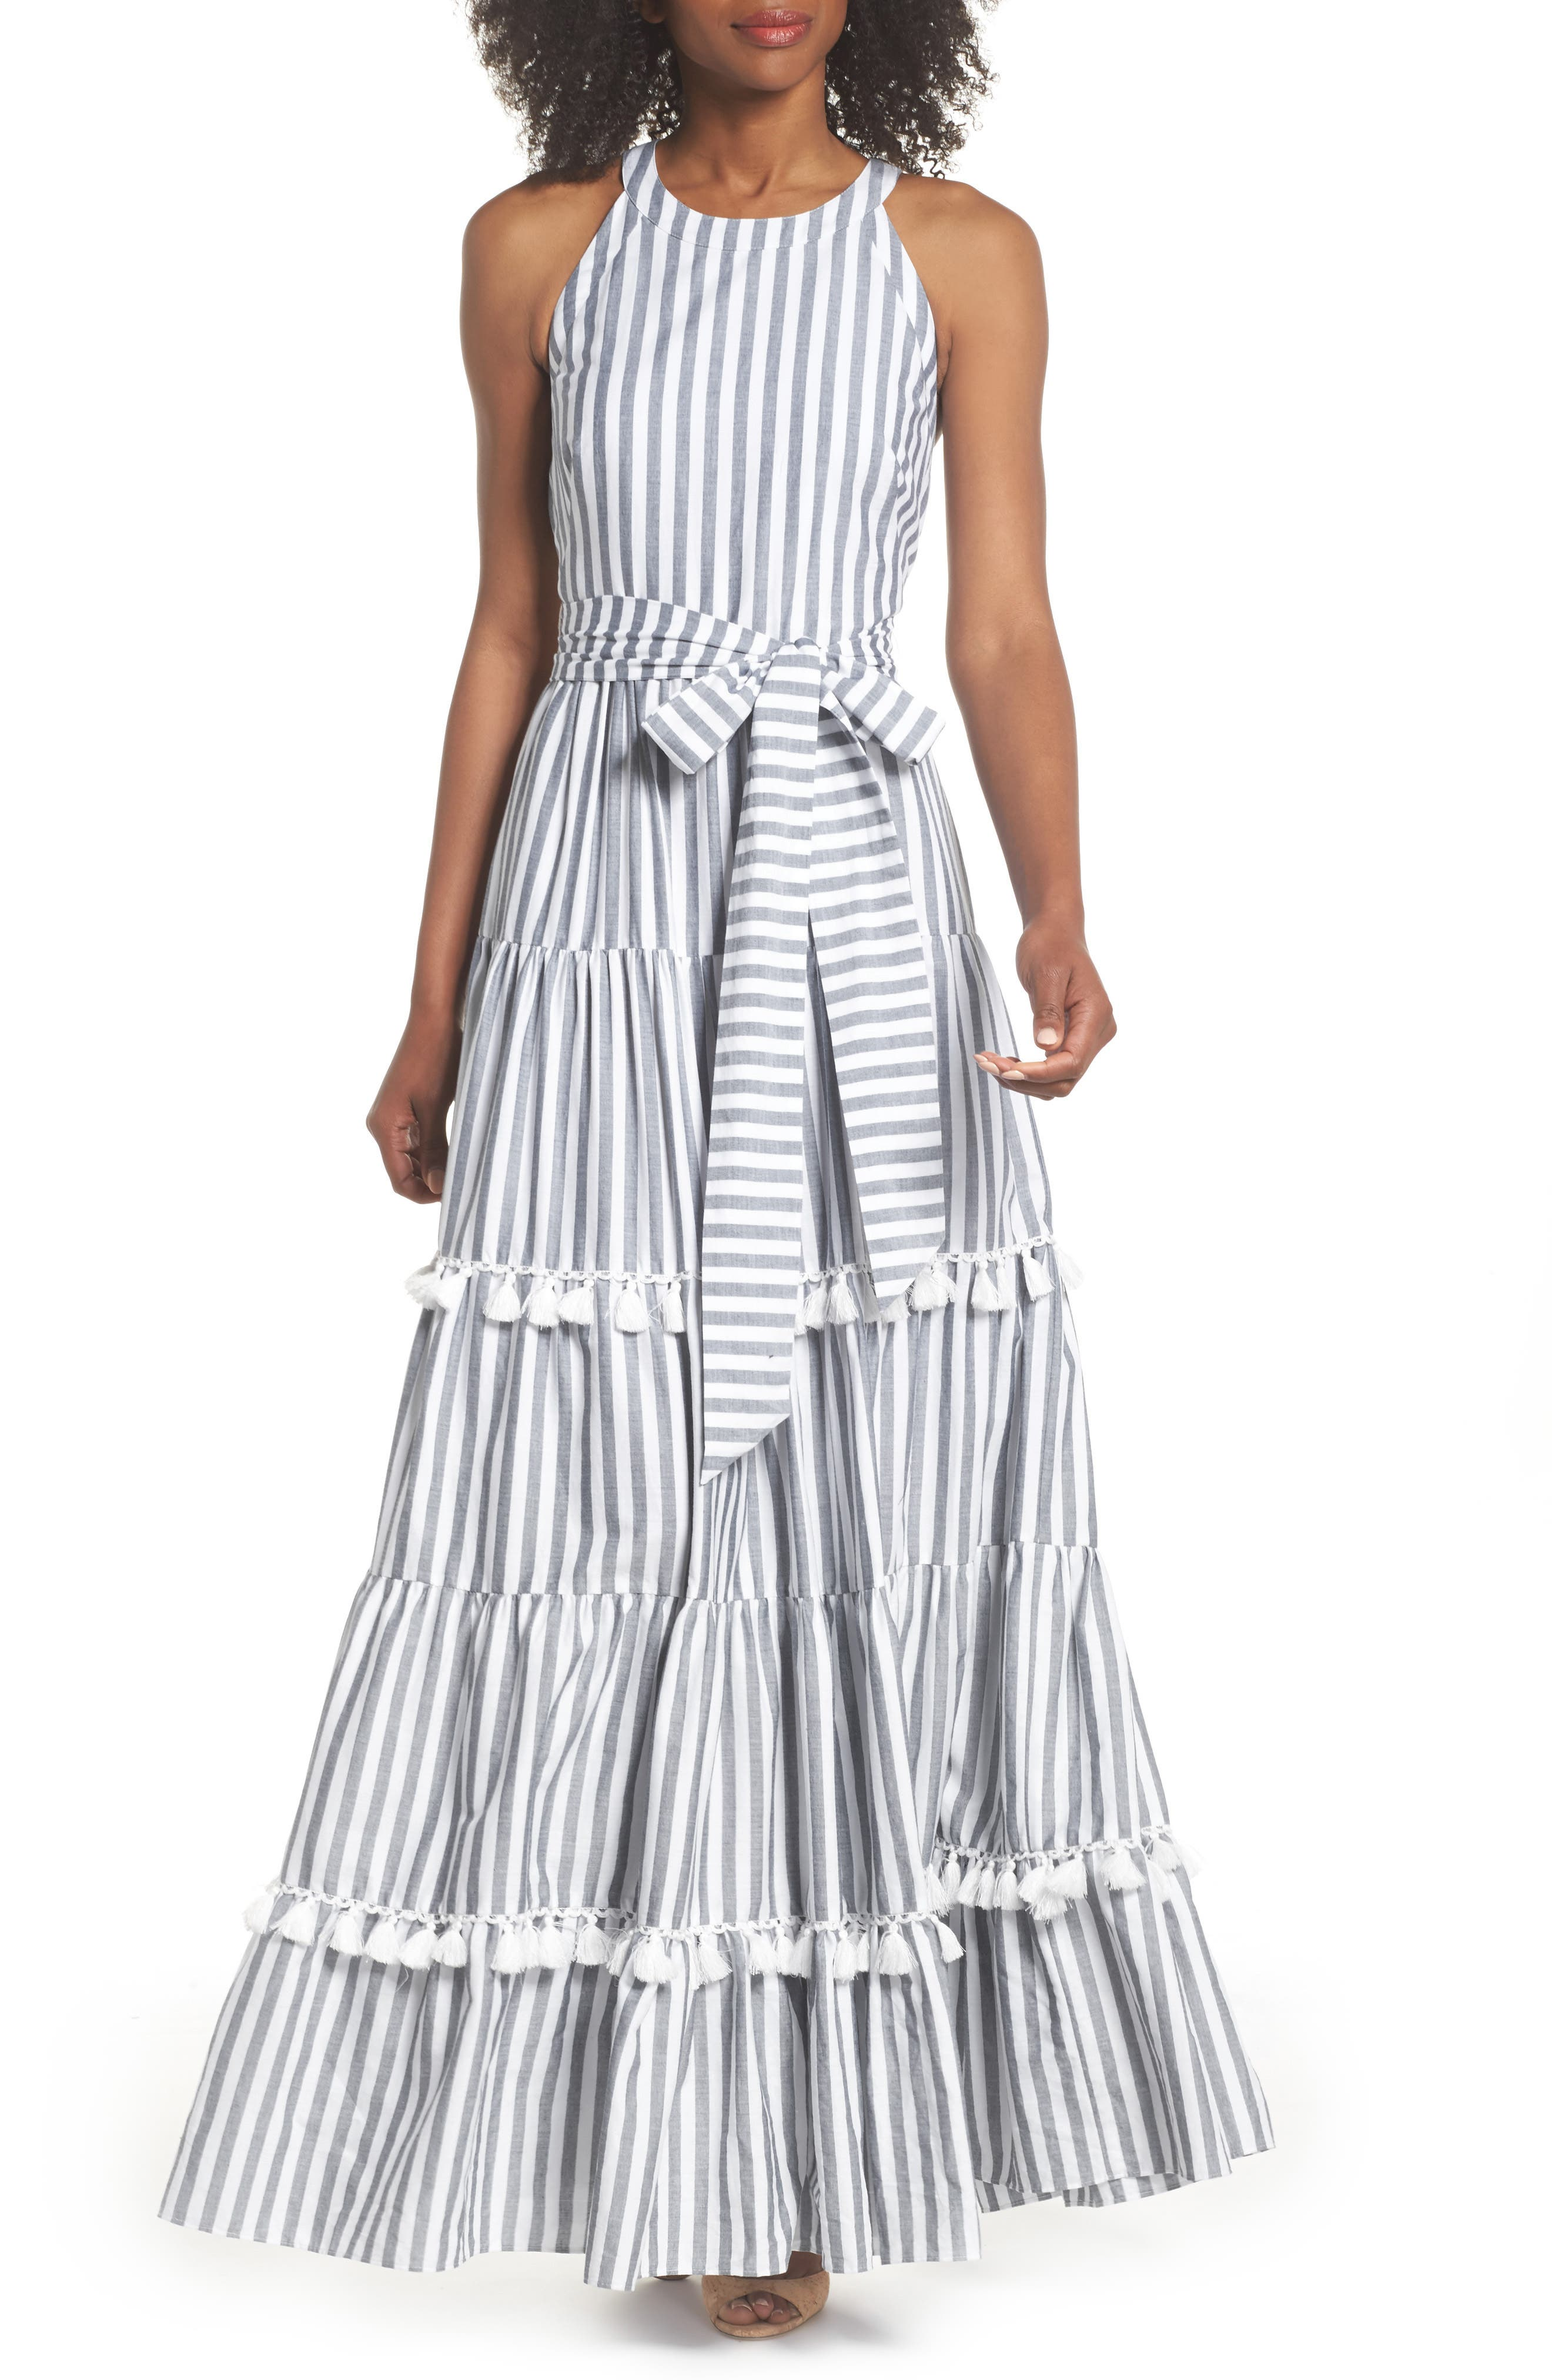 Tiered Tassel Fringe Cotton Maxi Dress, Main, color, IVORY/ GREY